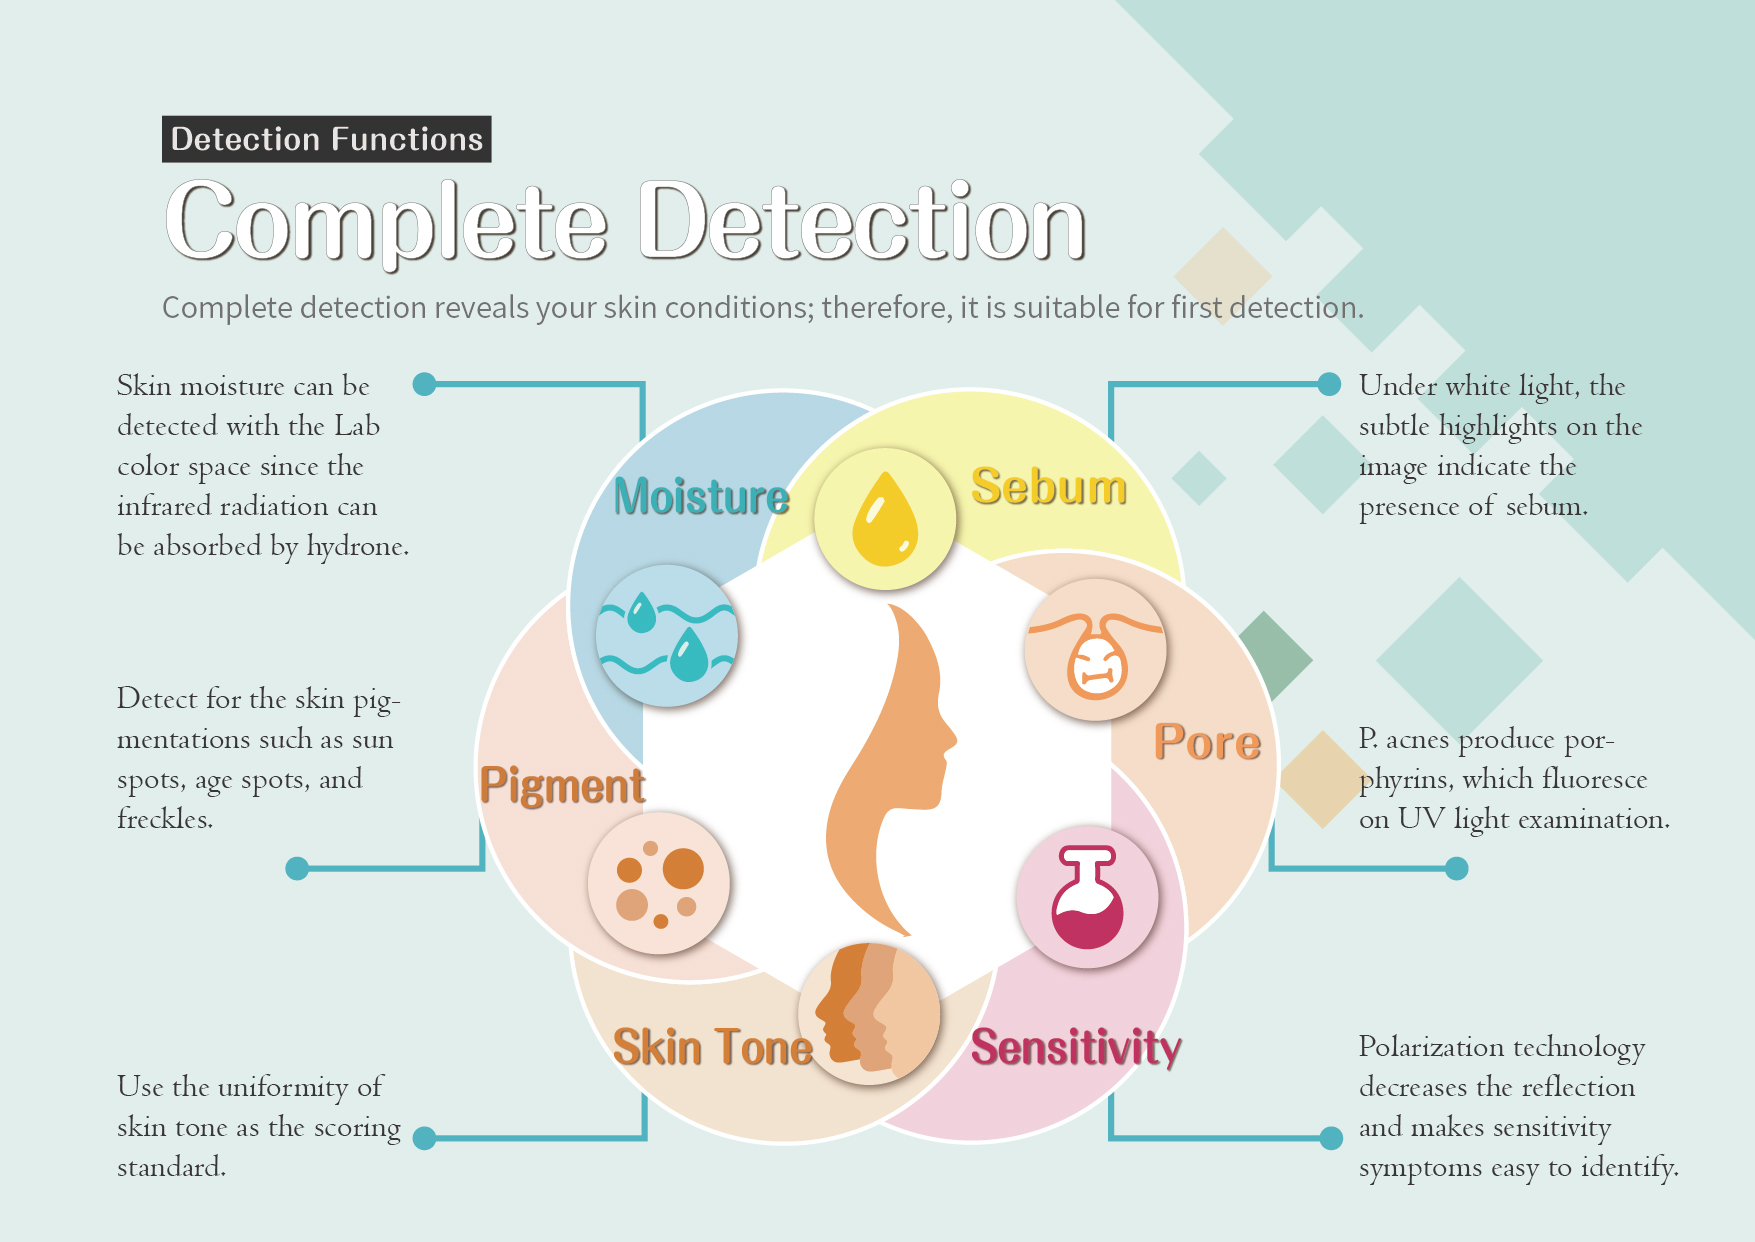 Complete Detection: Complete detection reveals your skin conditions; therefore, it is suitable for first detection.